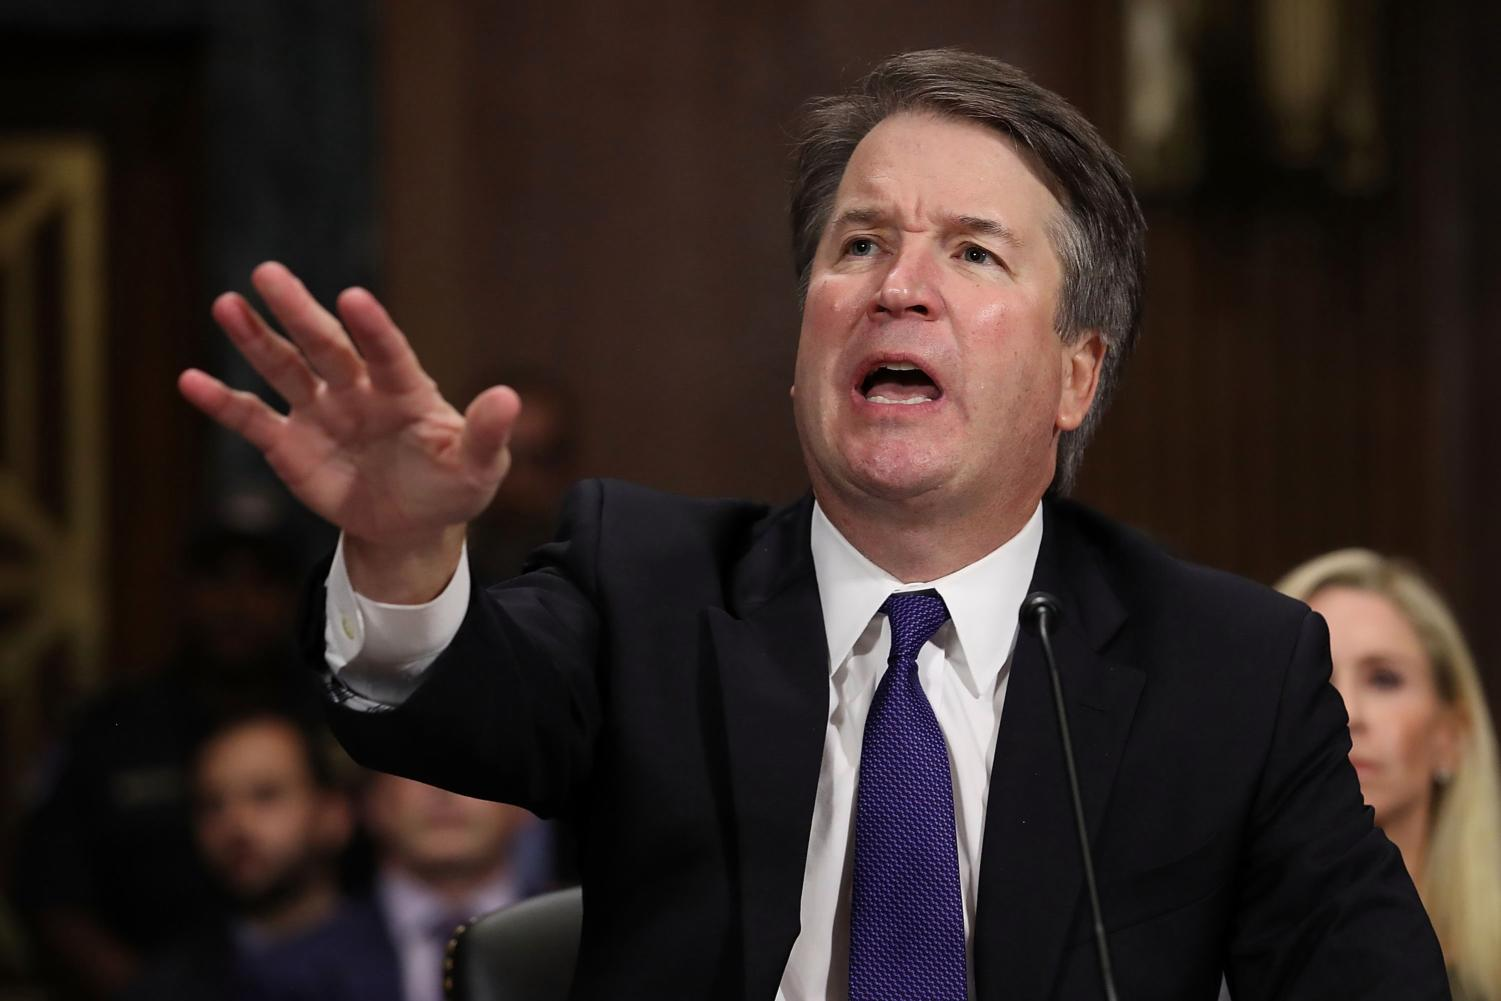 Judge Kavanaugh's demeanor at the hearing on Sept. 27 evoked concern among some senators.